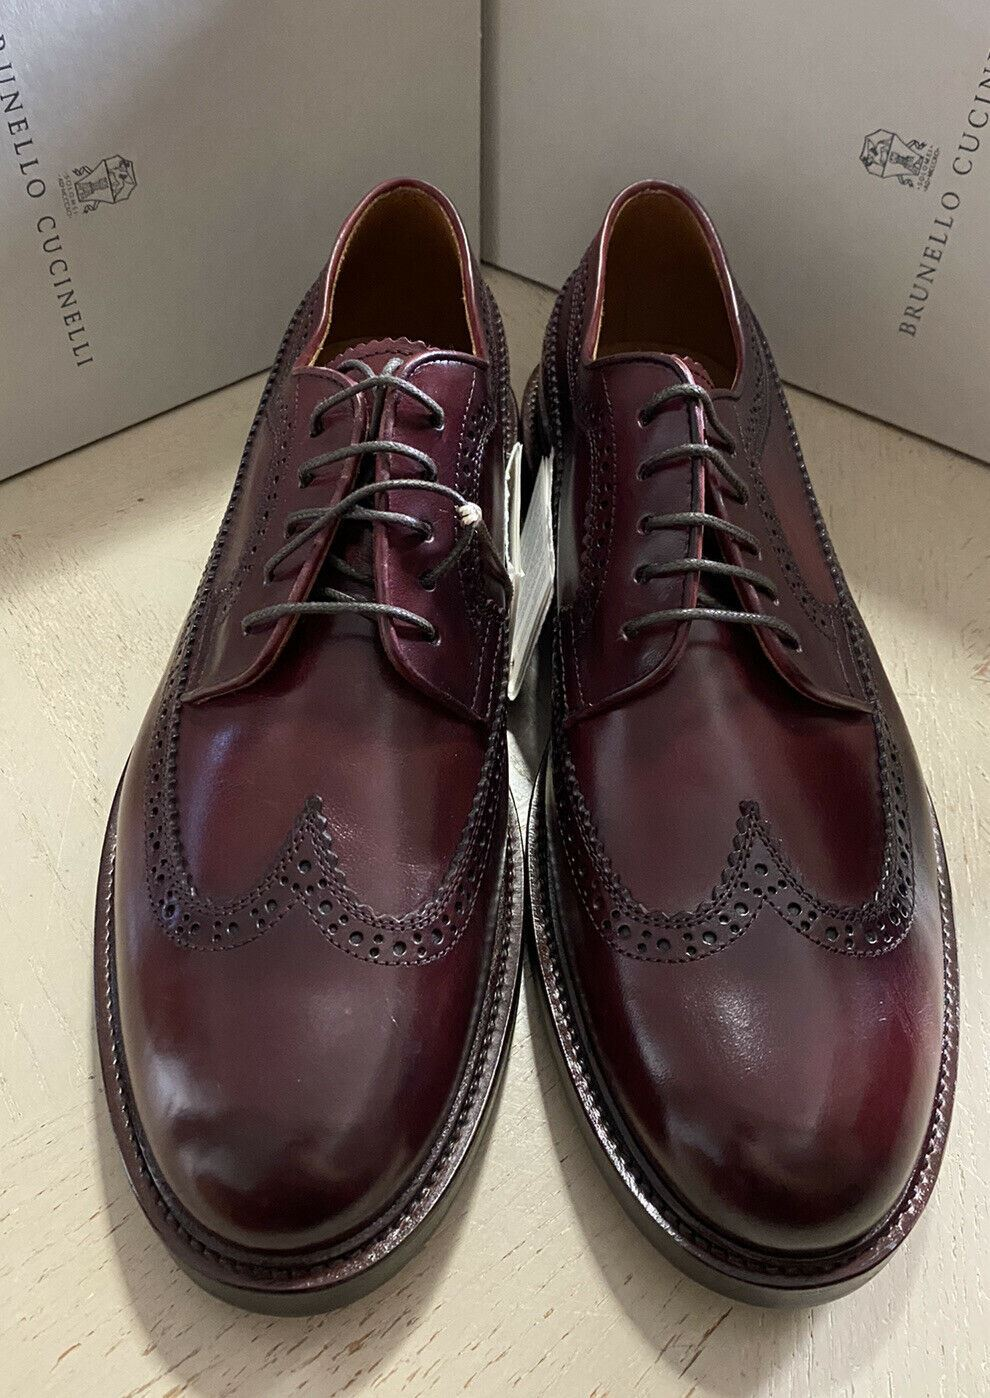 New $995 Brunello Cucinelli Men Leather Shoes Burgundy 12 US ( 45 Eu )